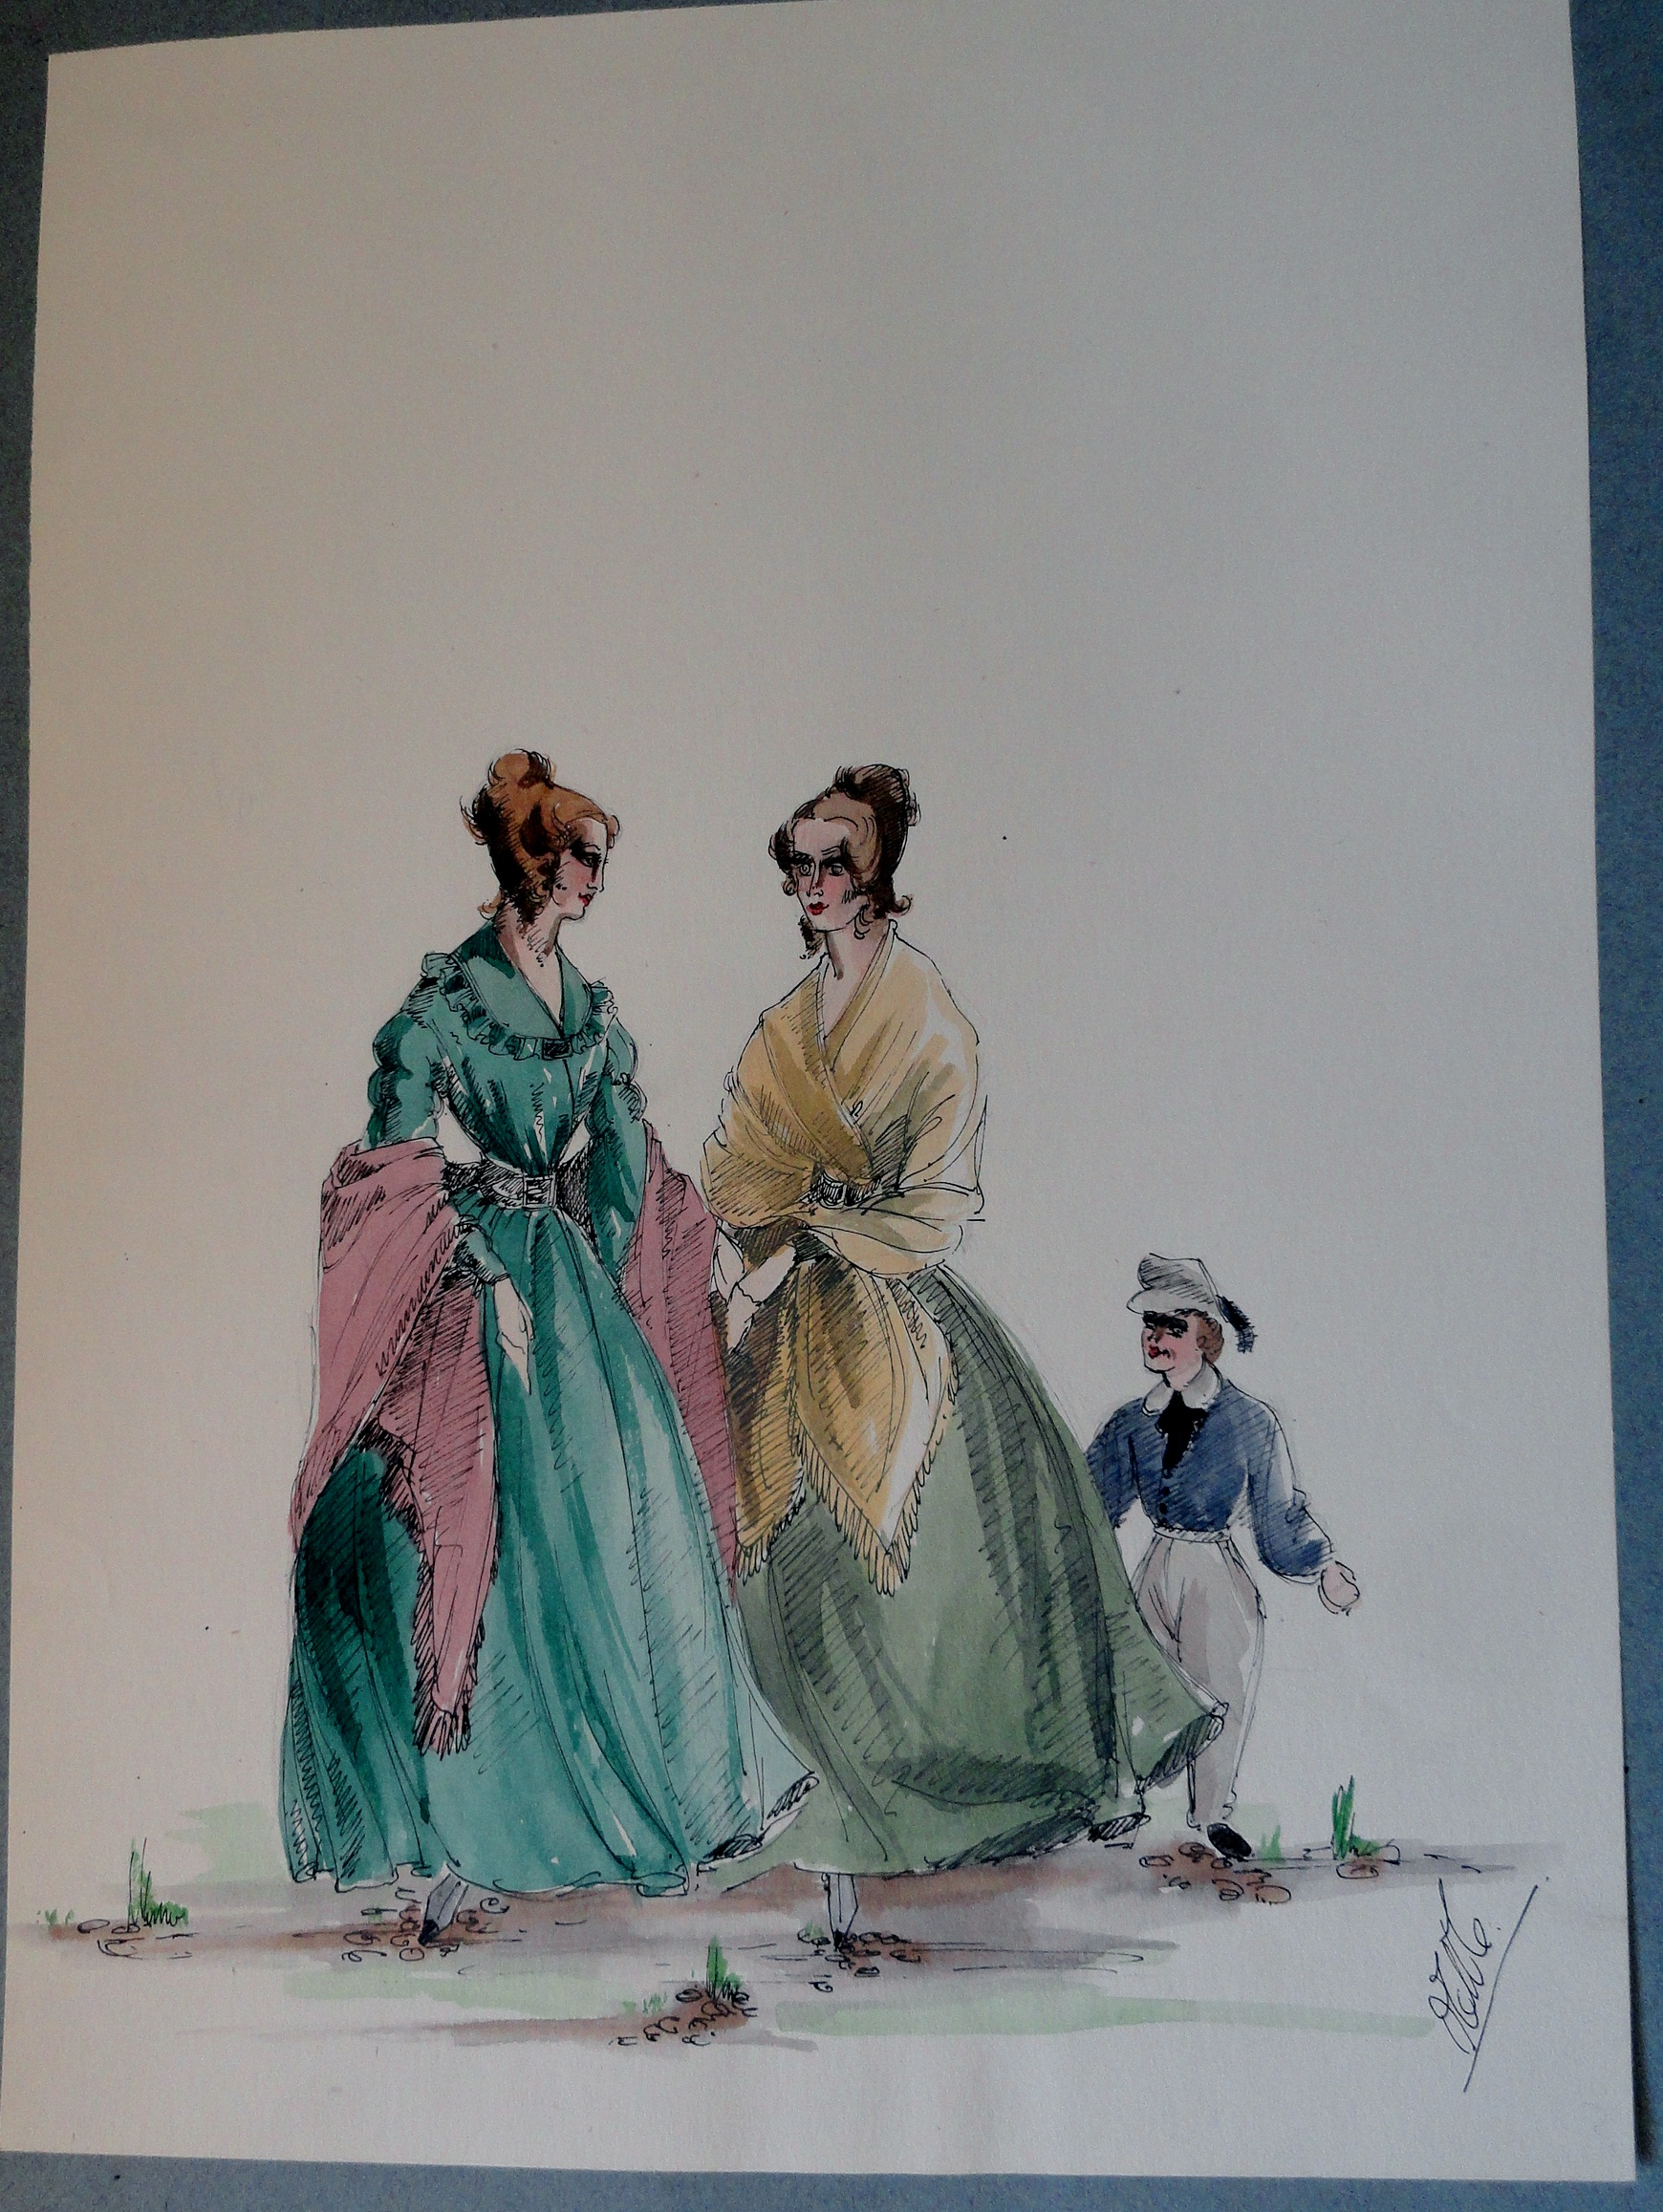 Rachel and sister with young boy in cap. Pen and Ink and Watercolor. From the Rachel Portfolio by Owen Hyde Clark.